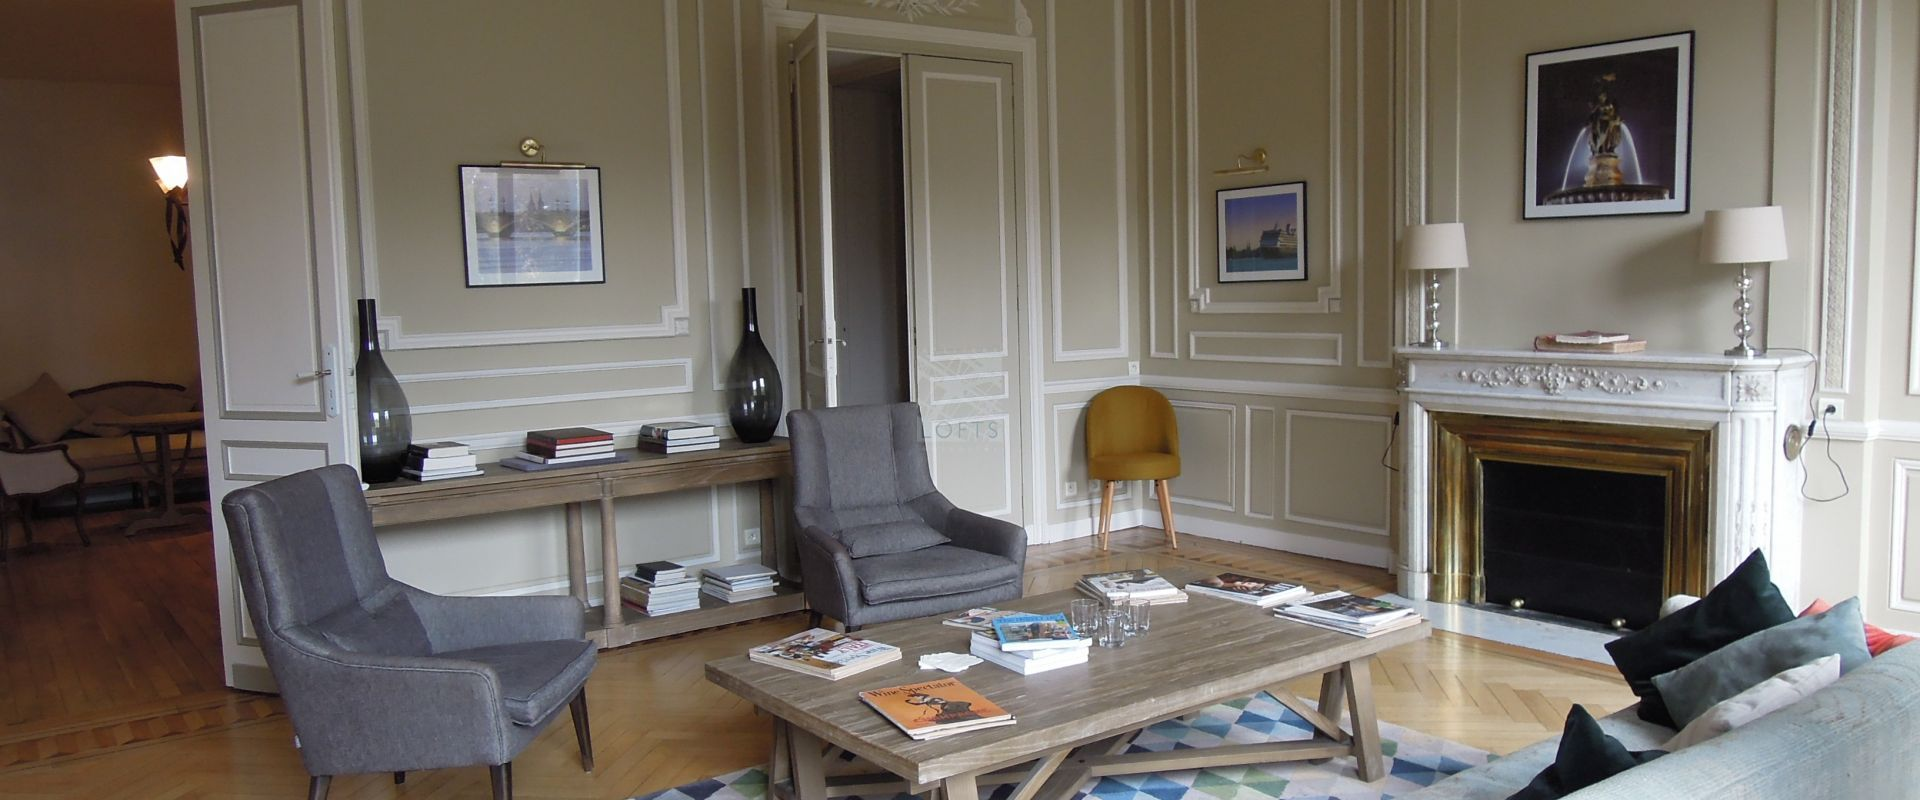 LOCATION APPARTEMENT BOURGEOIS MEUBLE